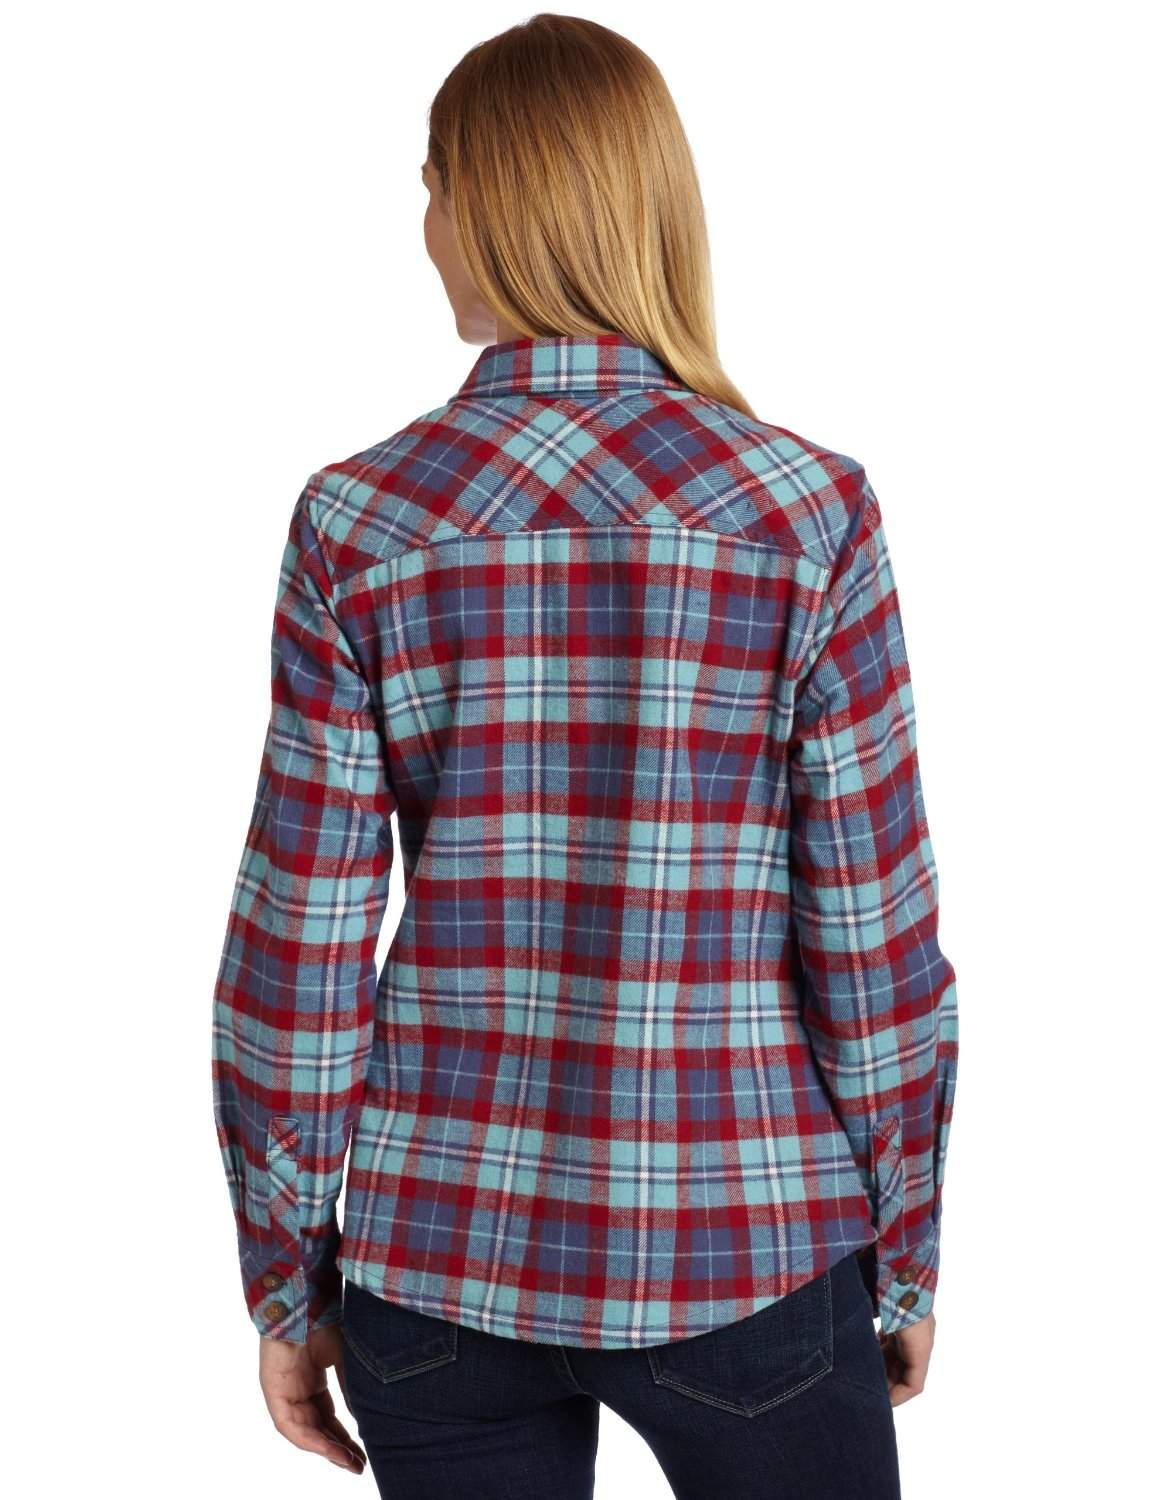 Womens flannel shirts 2012 03 11 for What are flannel shirts made of